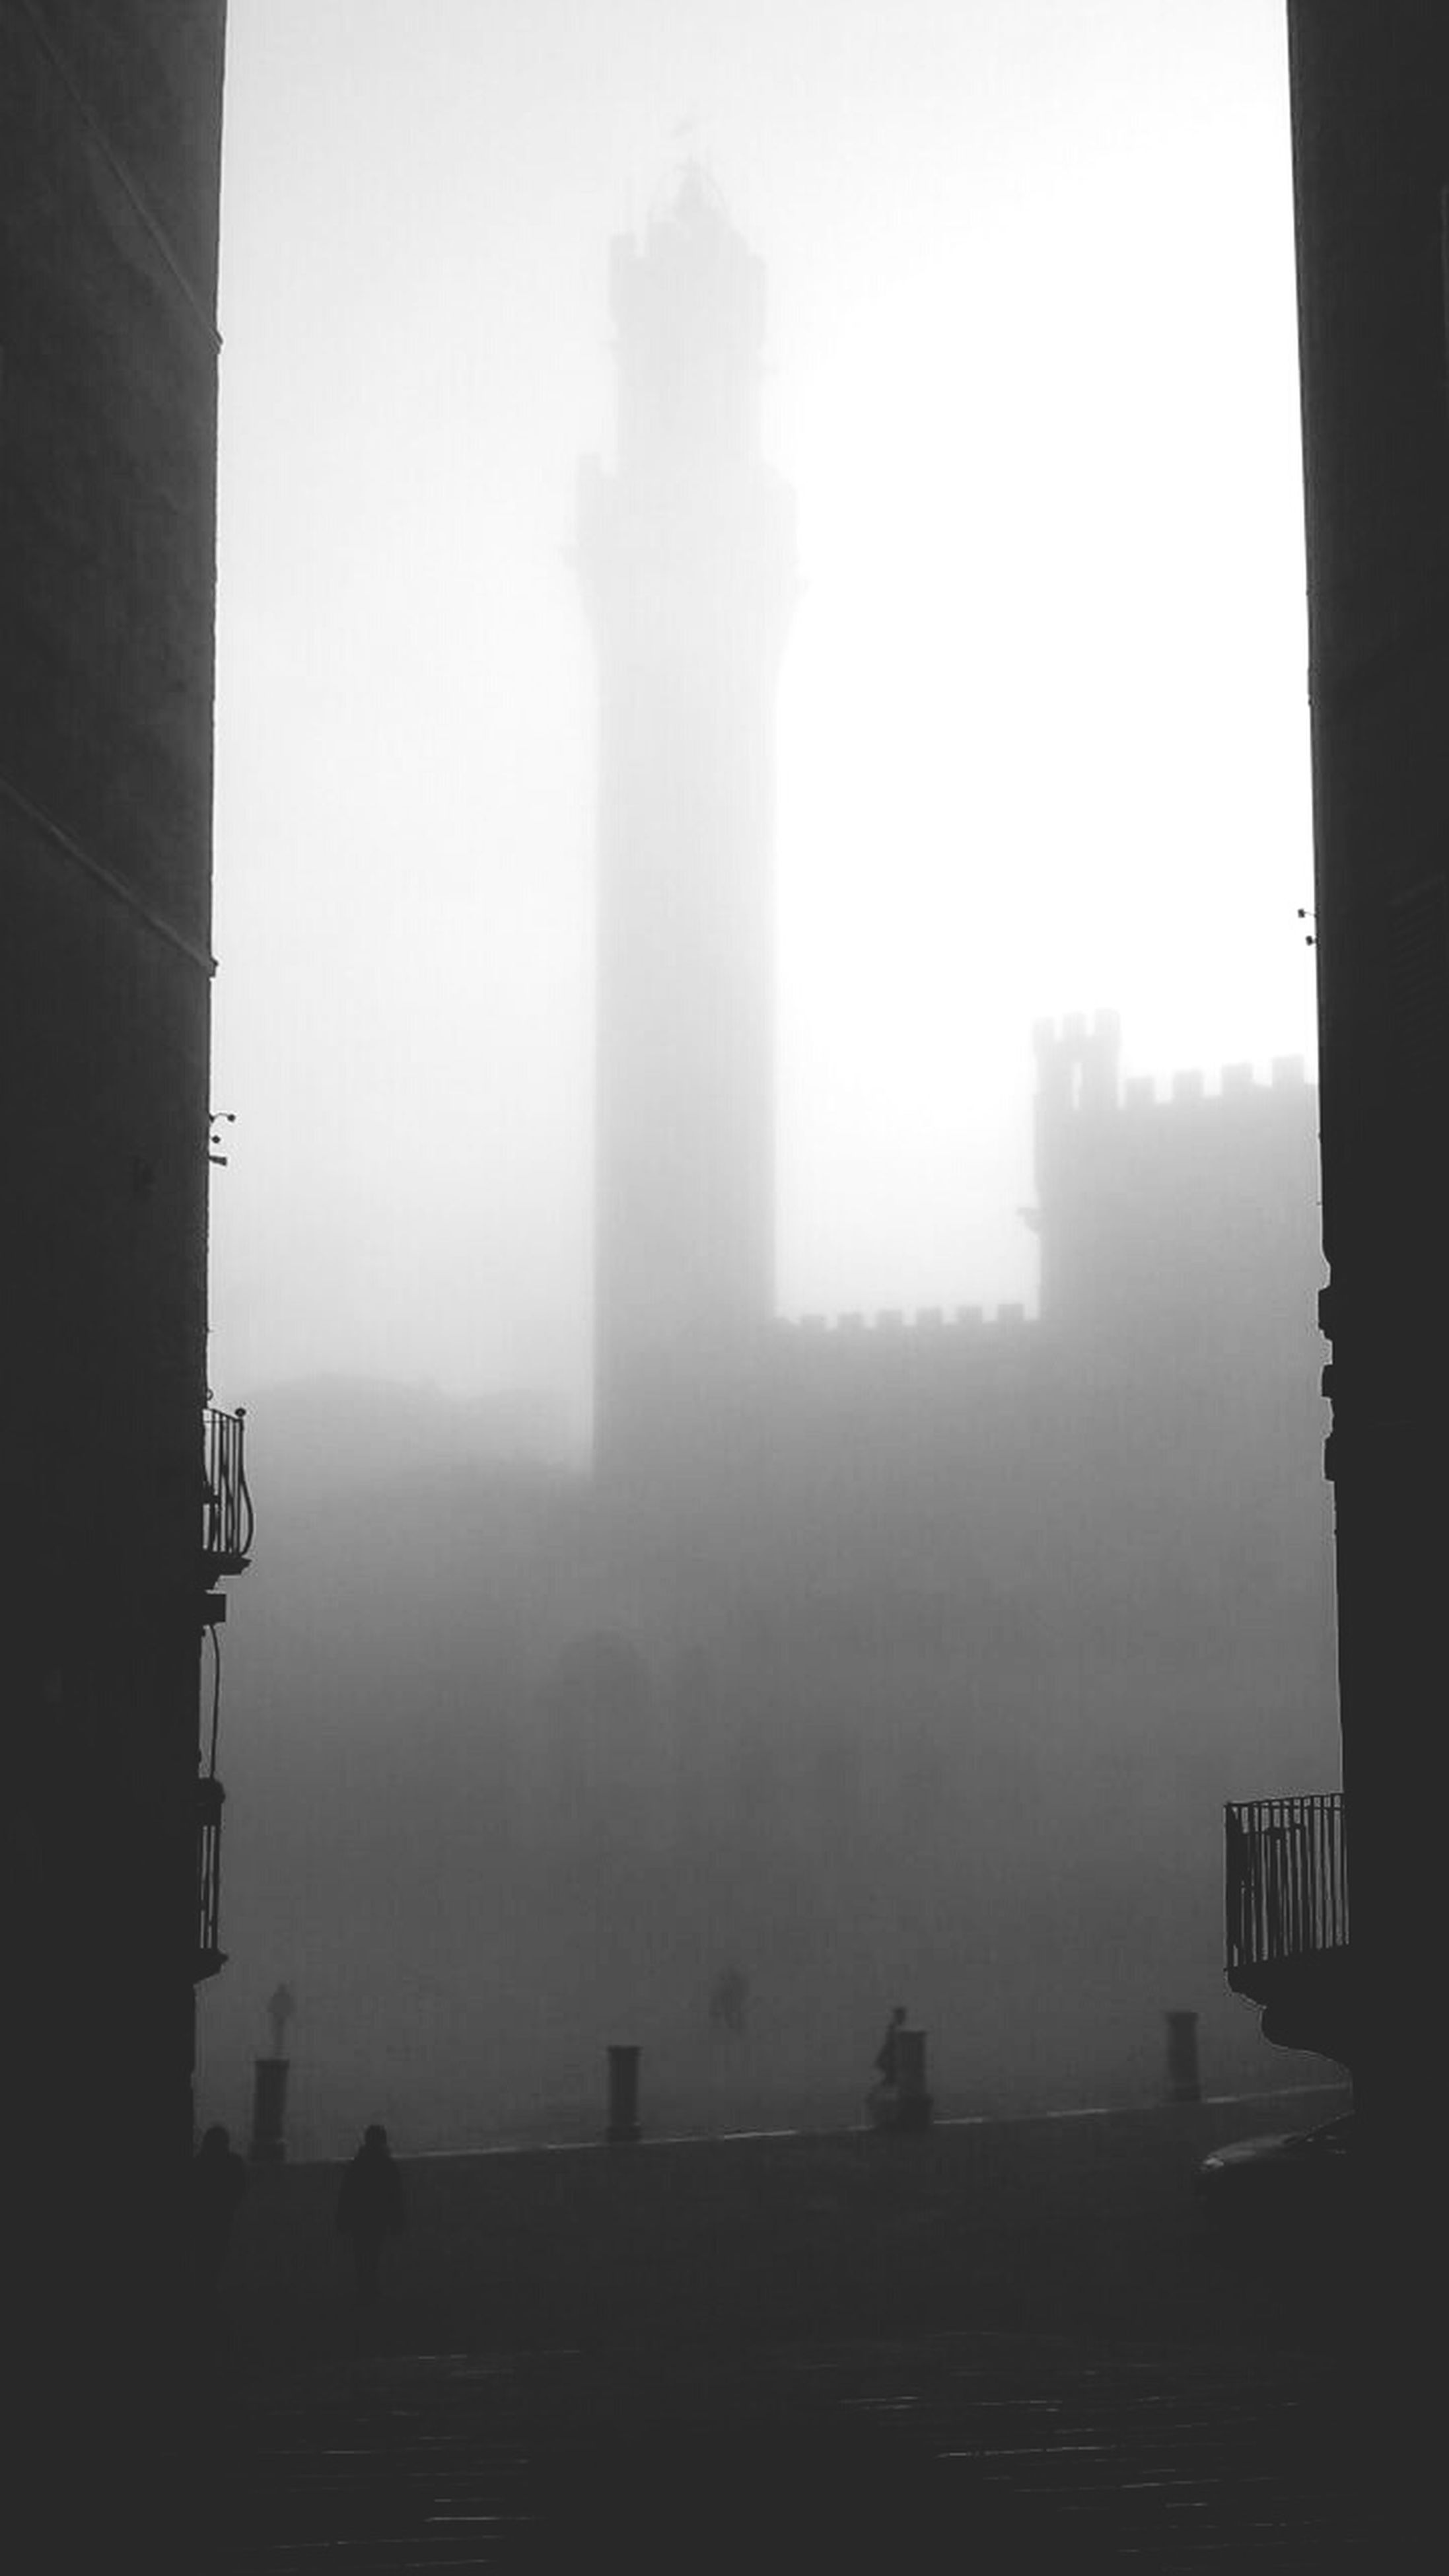 silhouette, fog, built structure, architecture, foggy, building exterior, sky, copy space, city, weather, outdoors, tranquility, nature, dusk, day, building, outline, water, no people